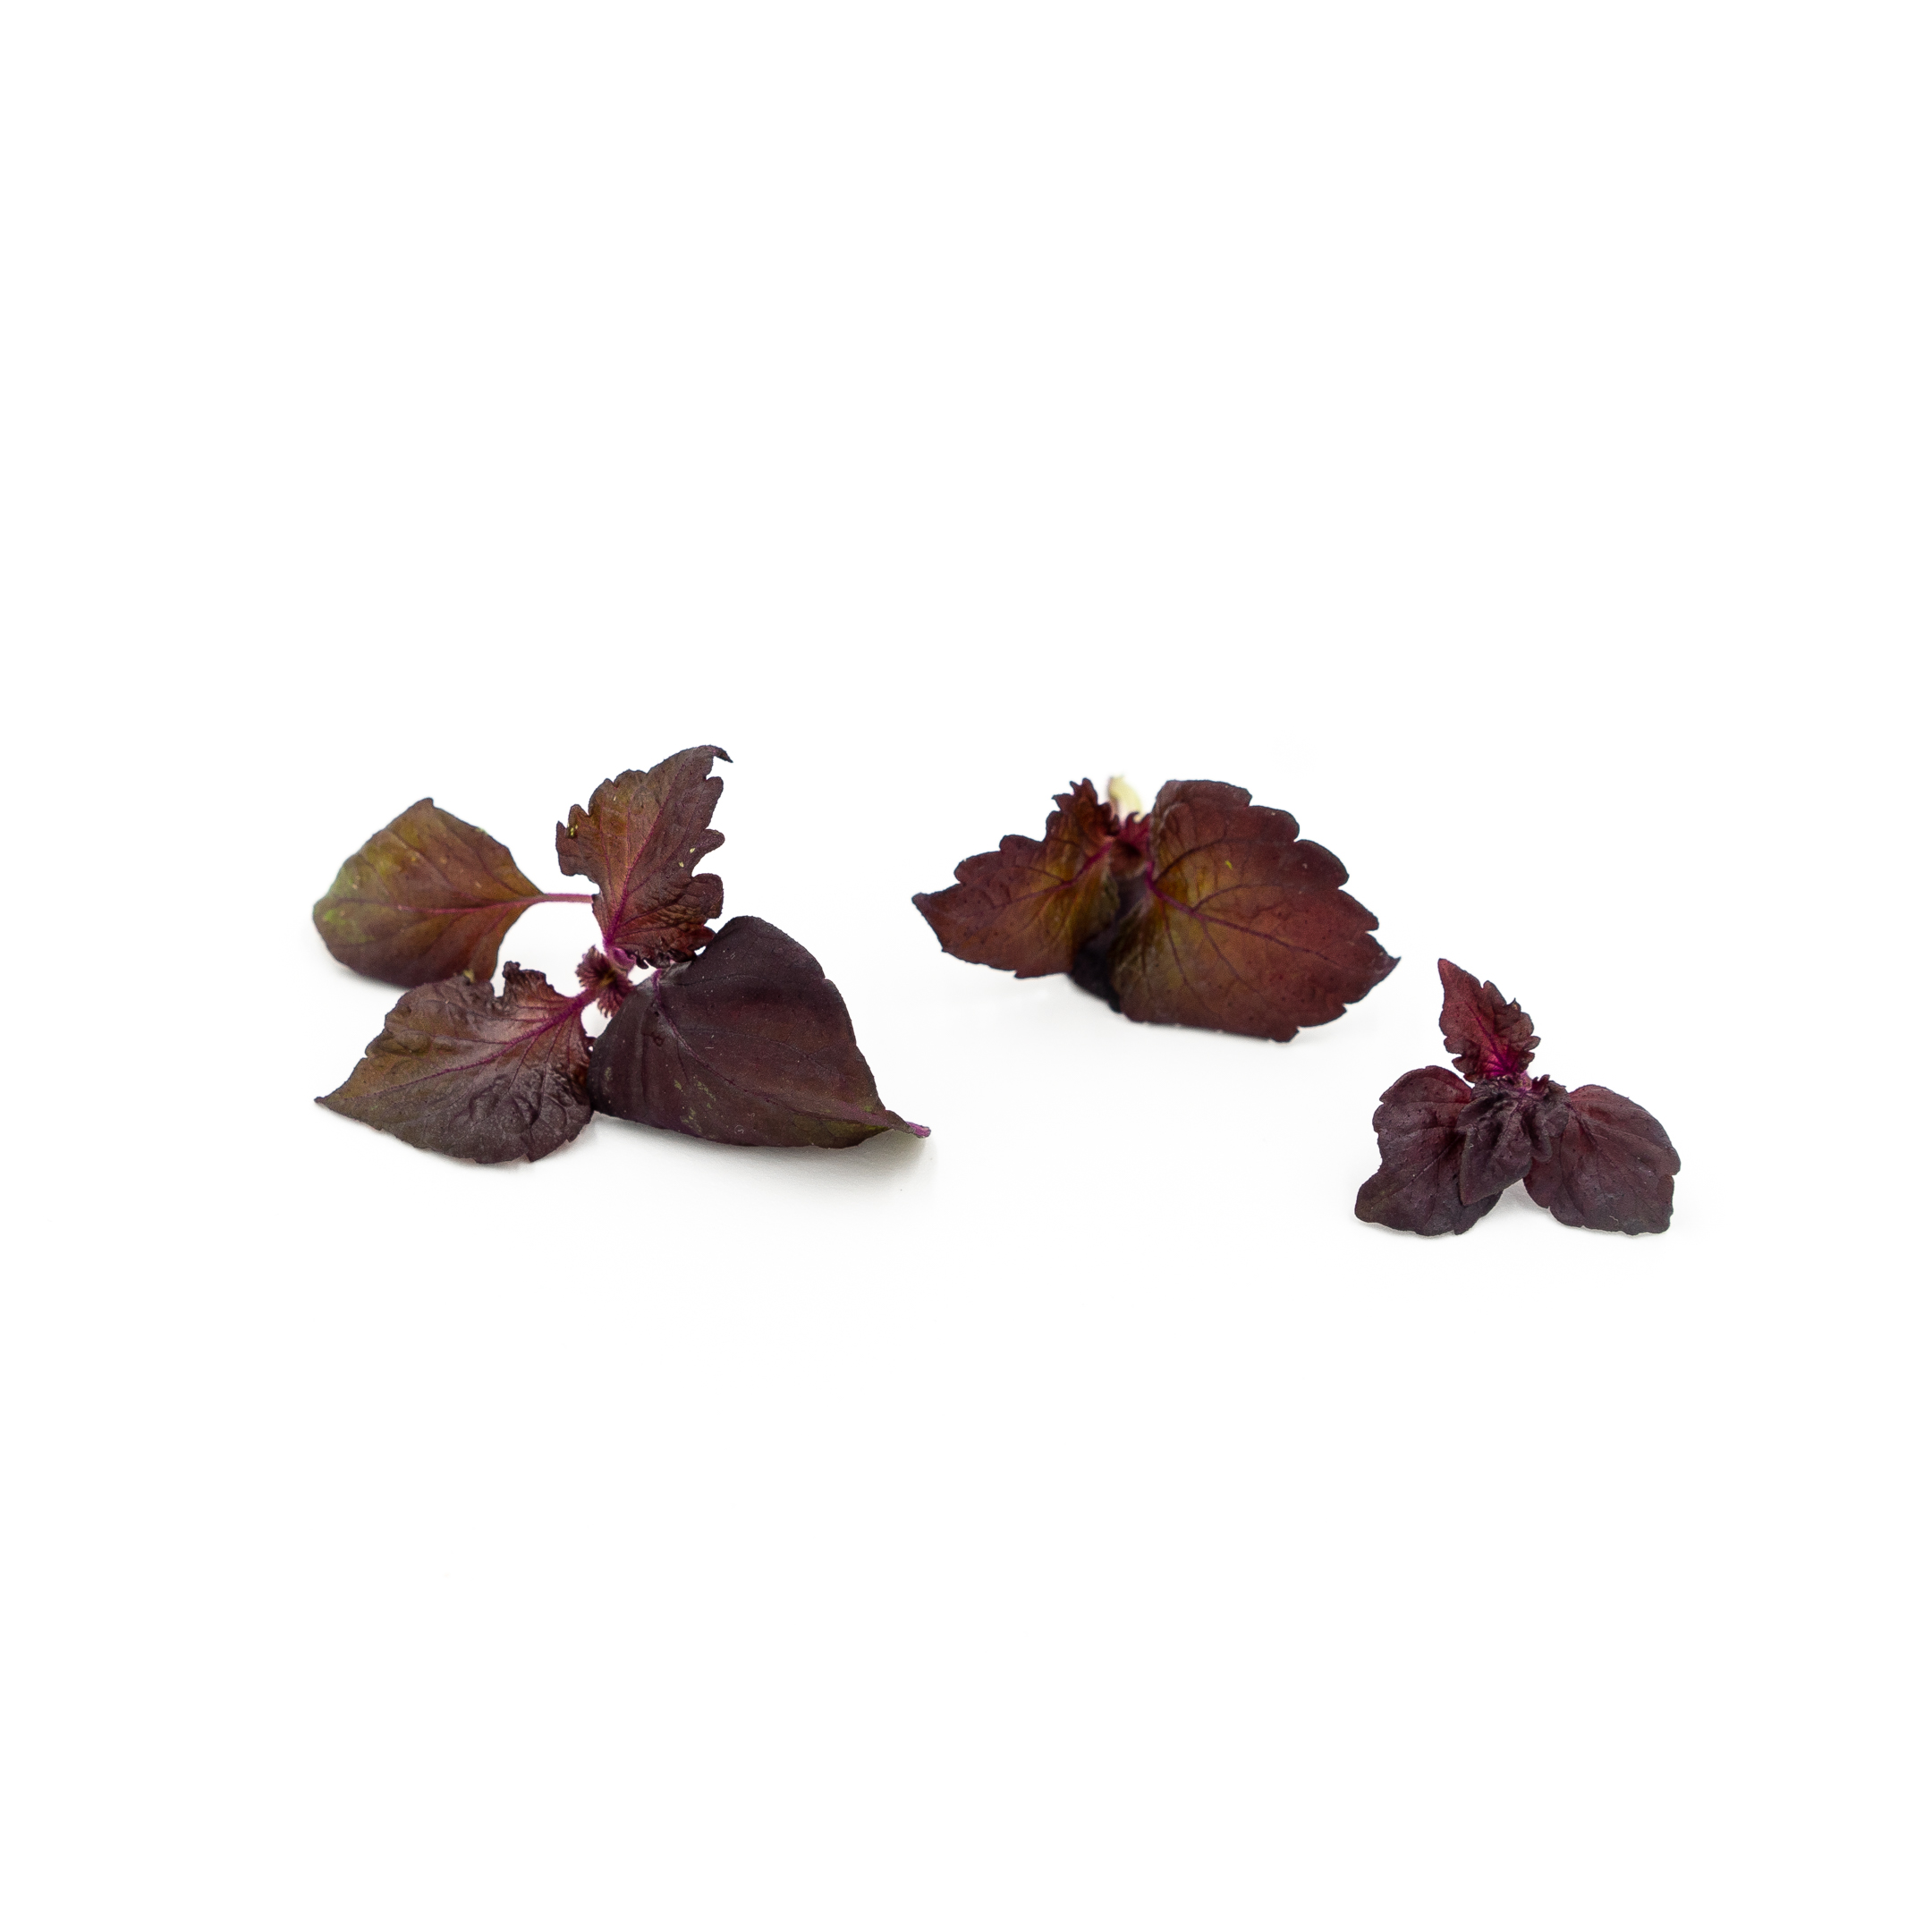 A deep purple-red microgreen with intense shiso flavor